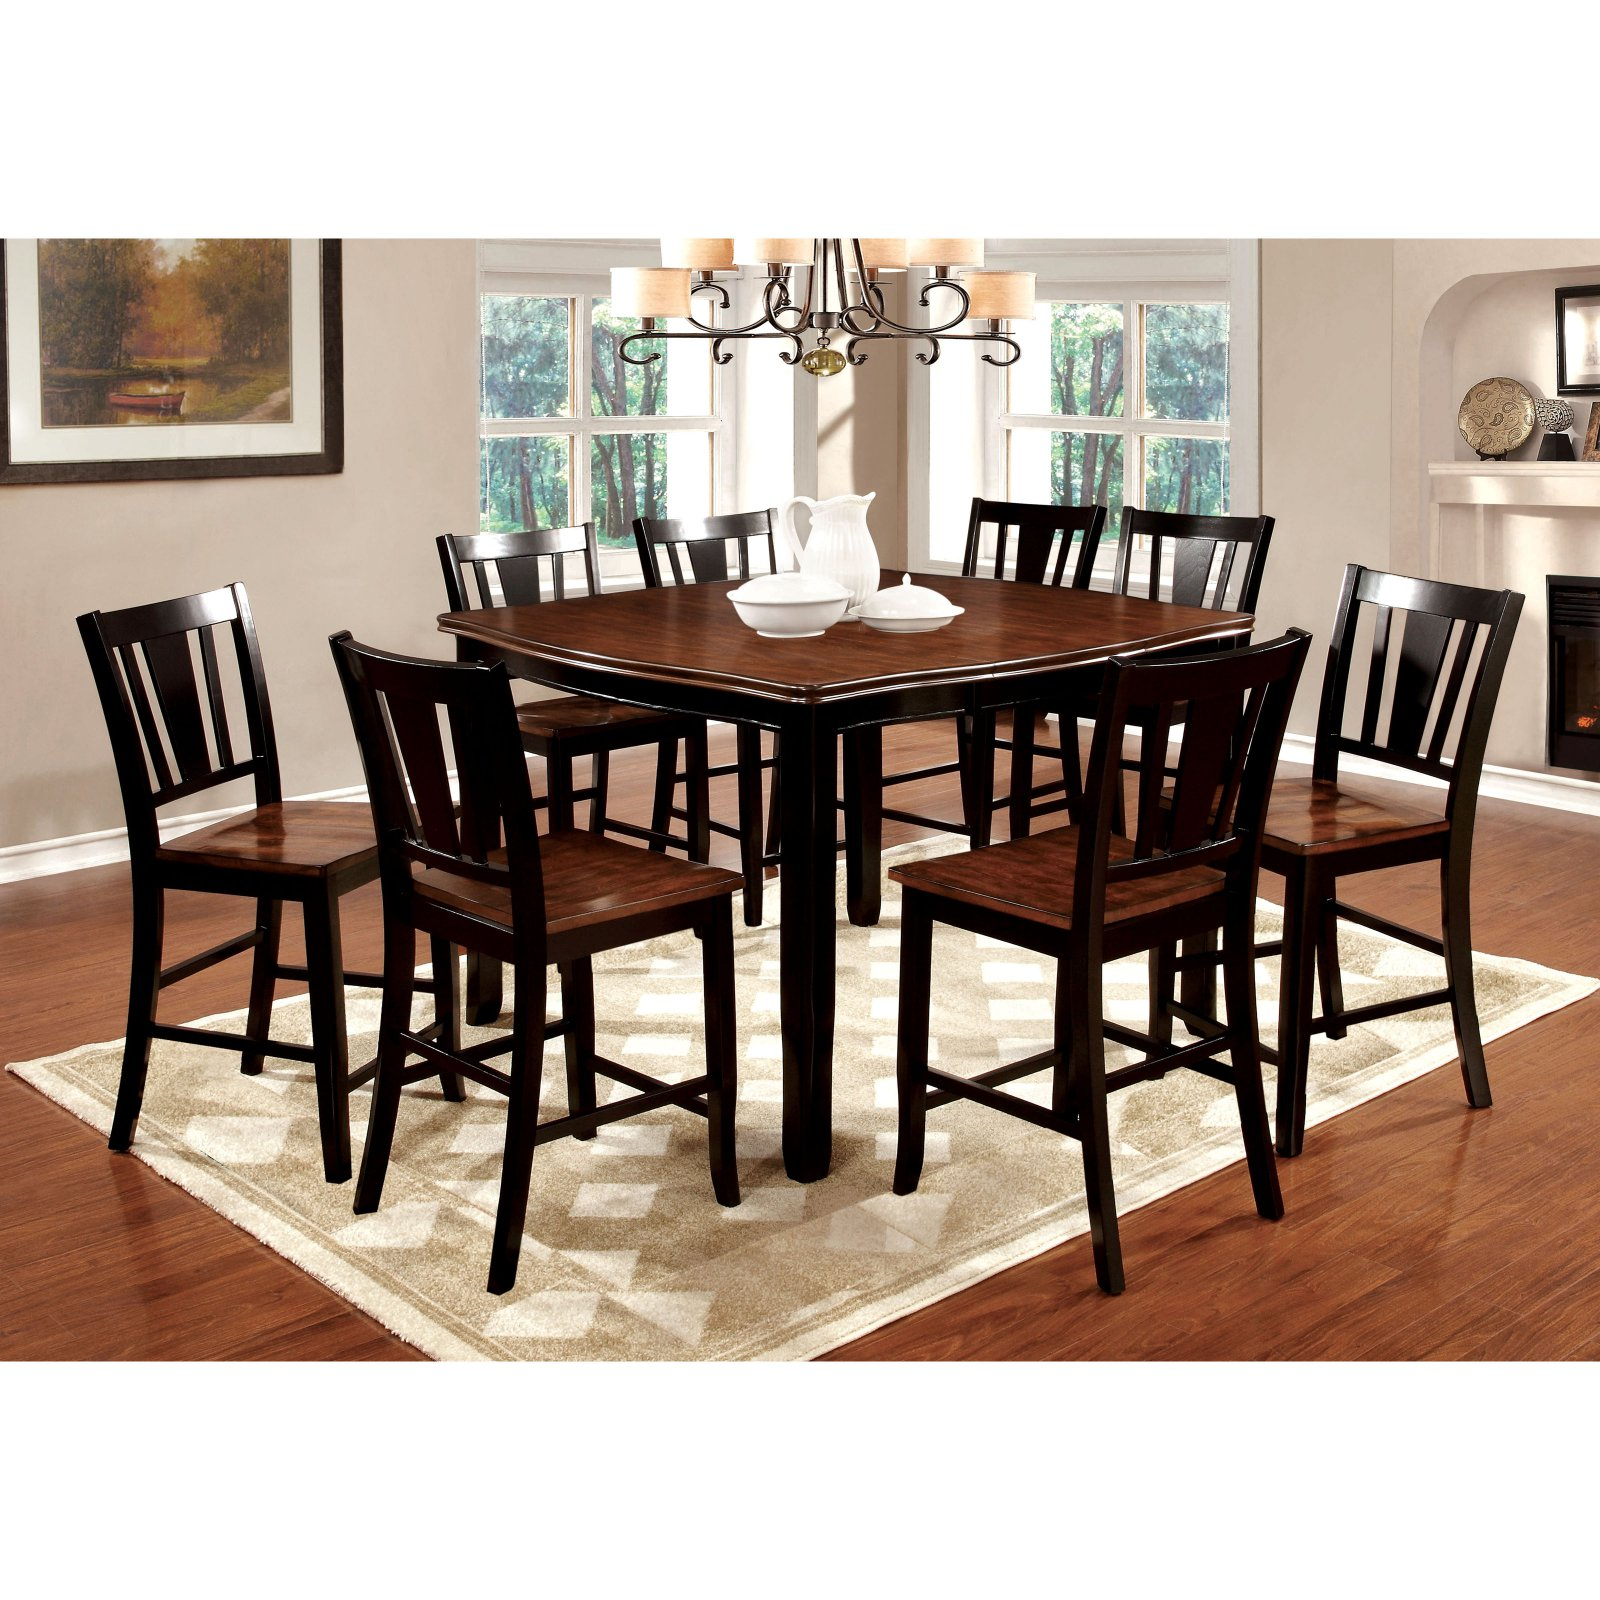 Furniture of America Lohman Counter Height Dual-Tone Dining Table